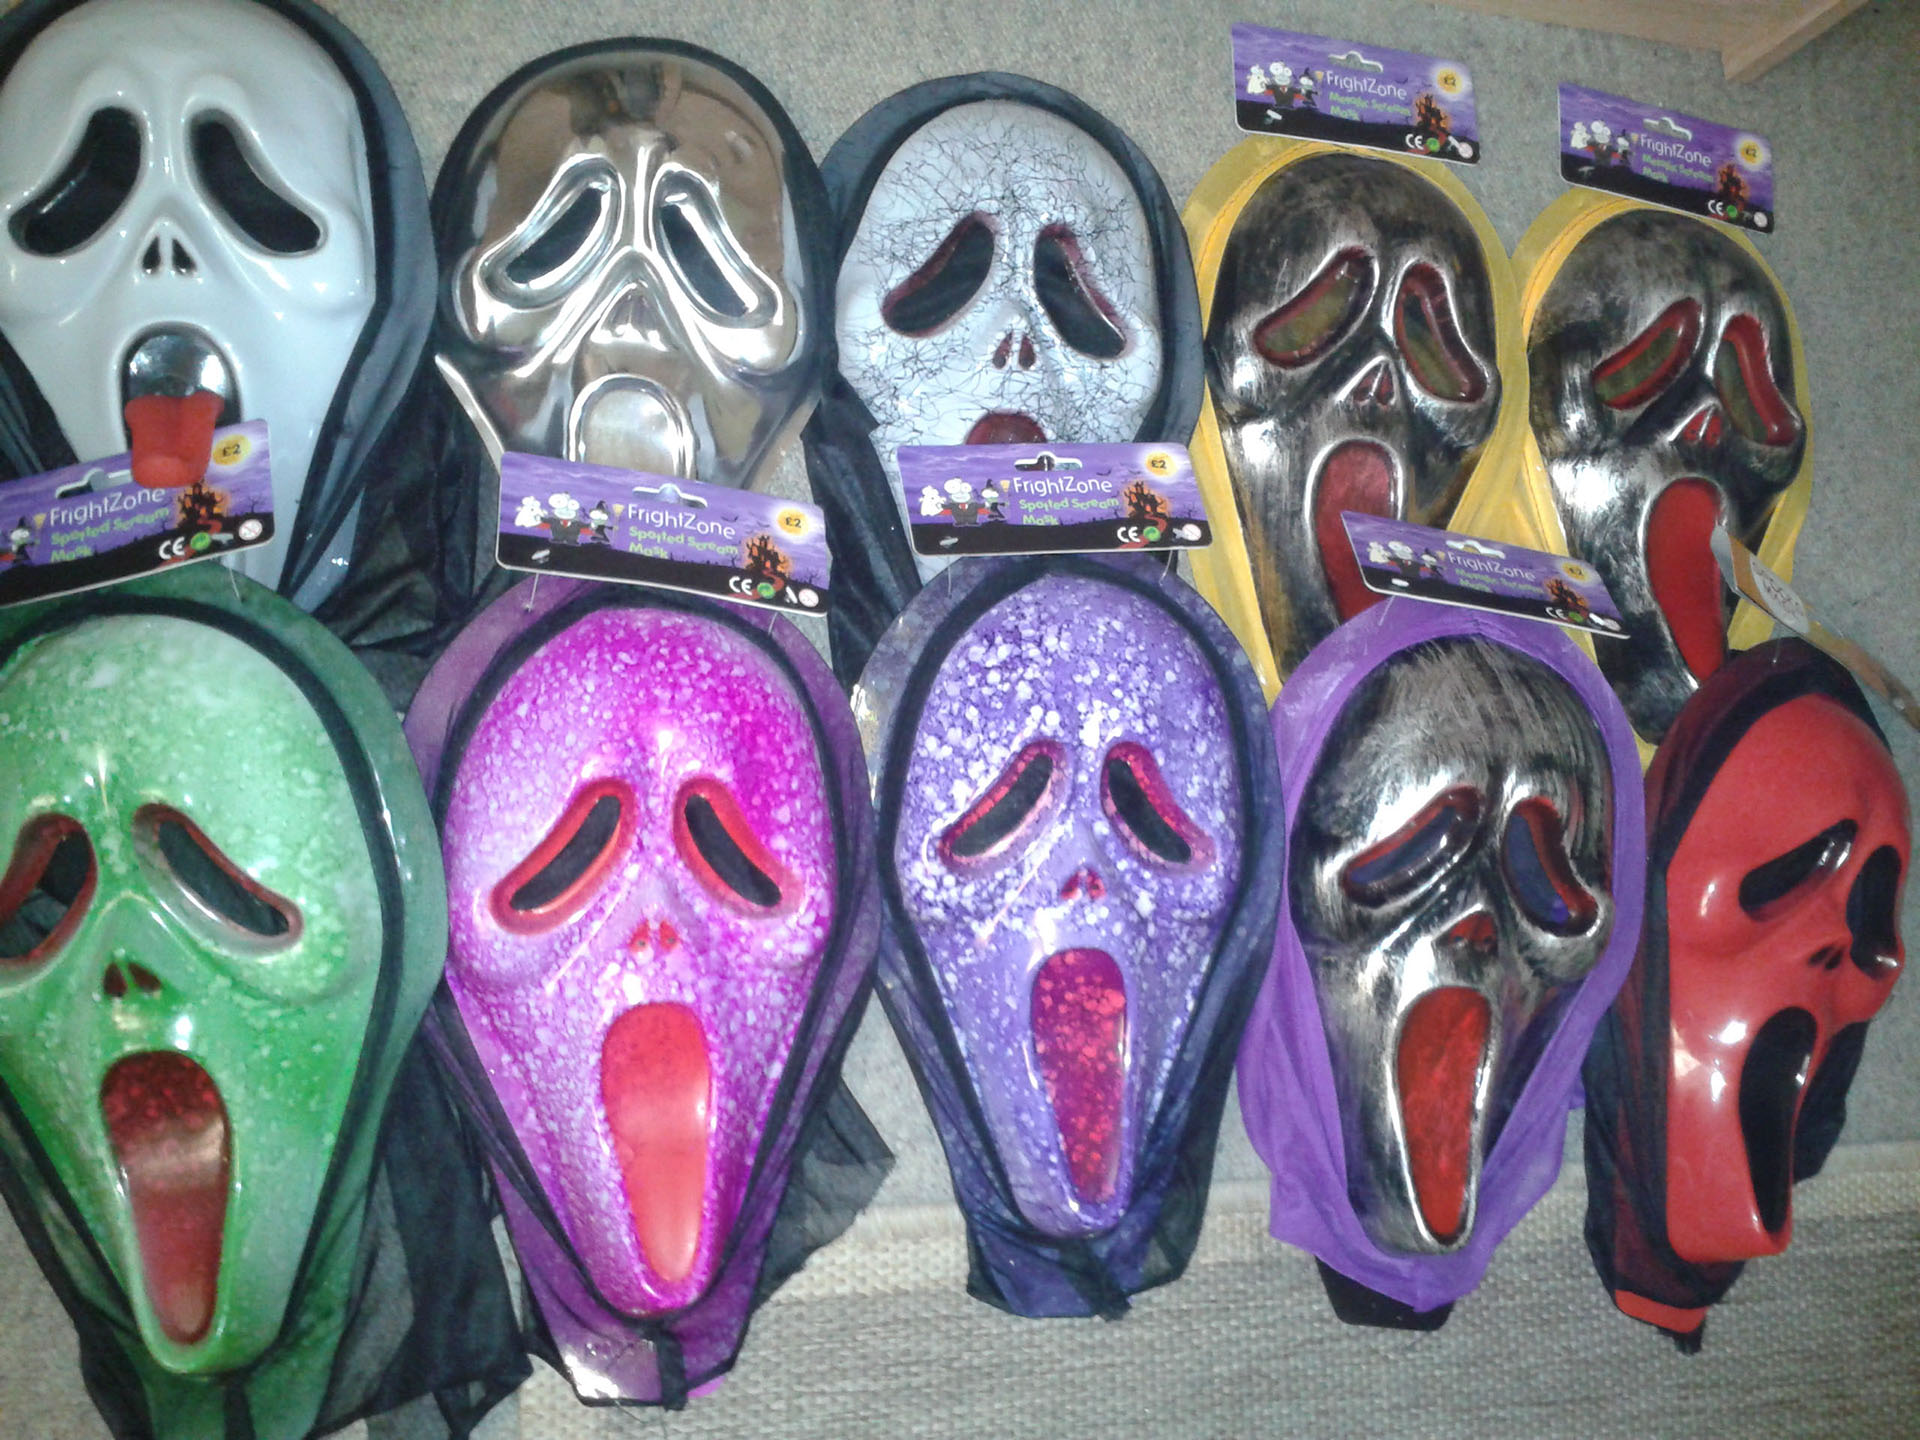 My Cheap Plastic Ghostface Scream Mask Rainbow.